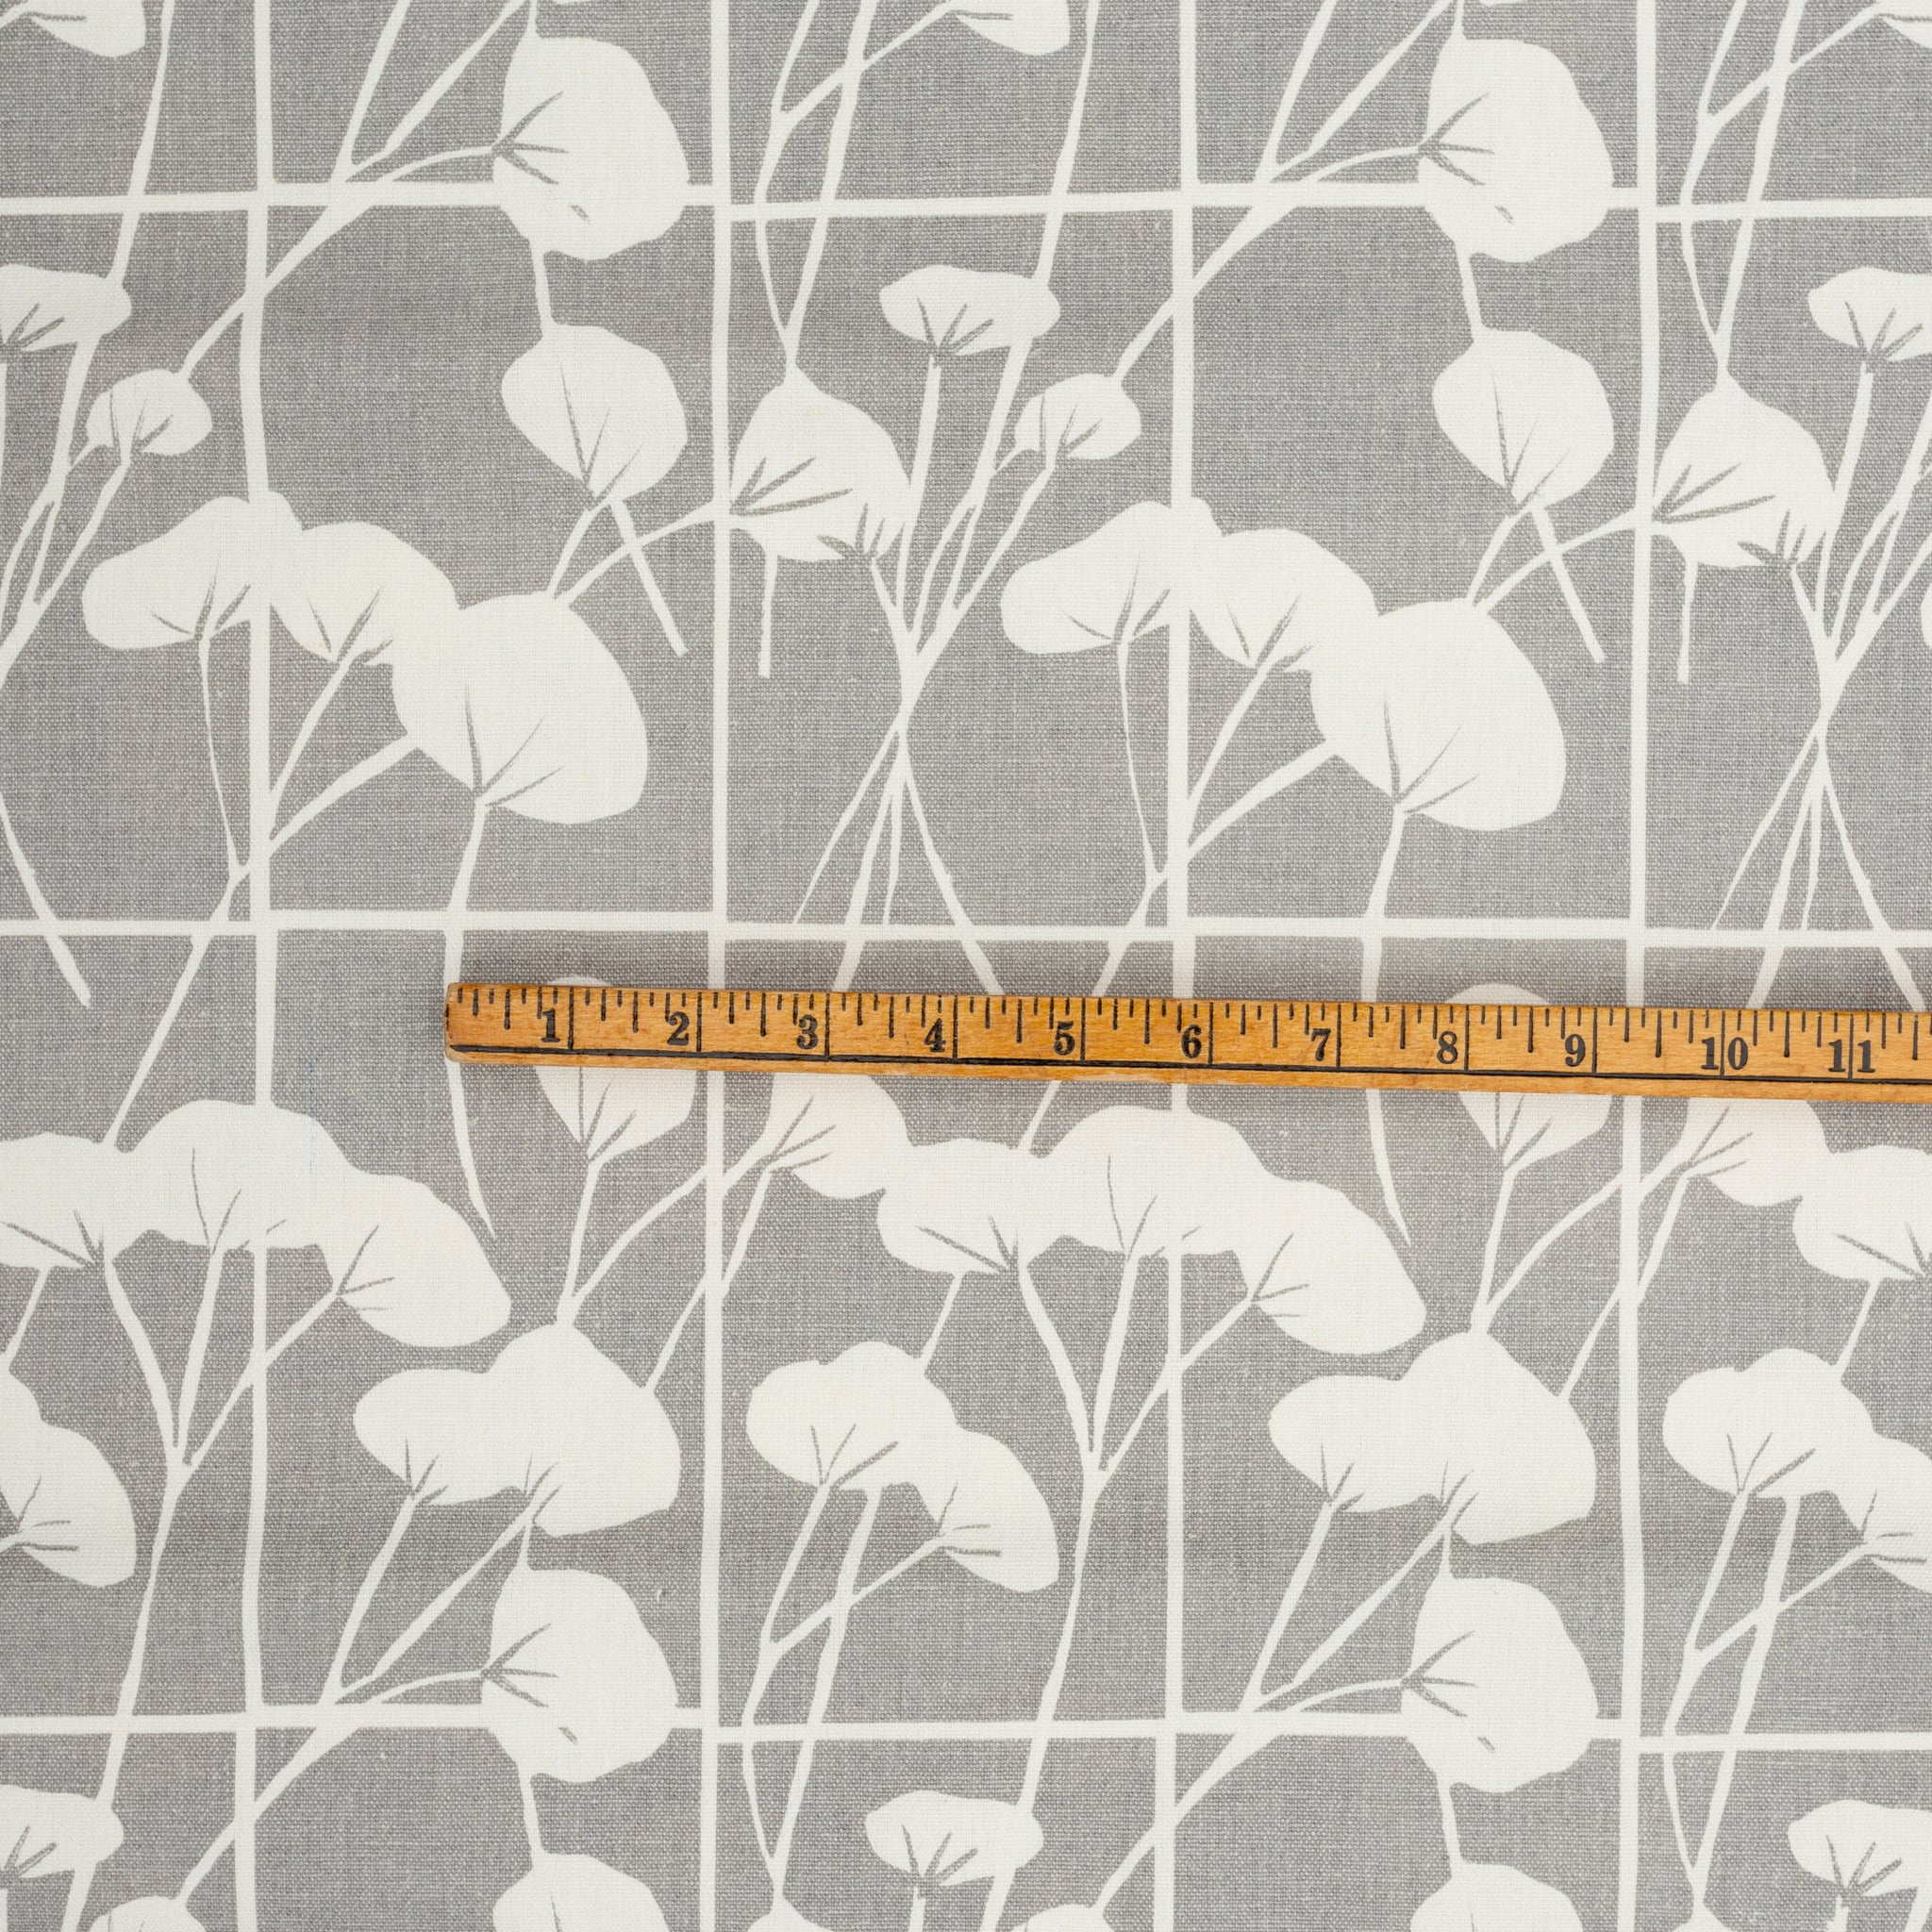 Screen printed fabric yardage with cotton plants and yardstick